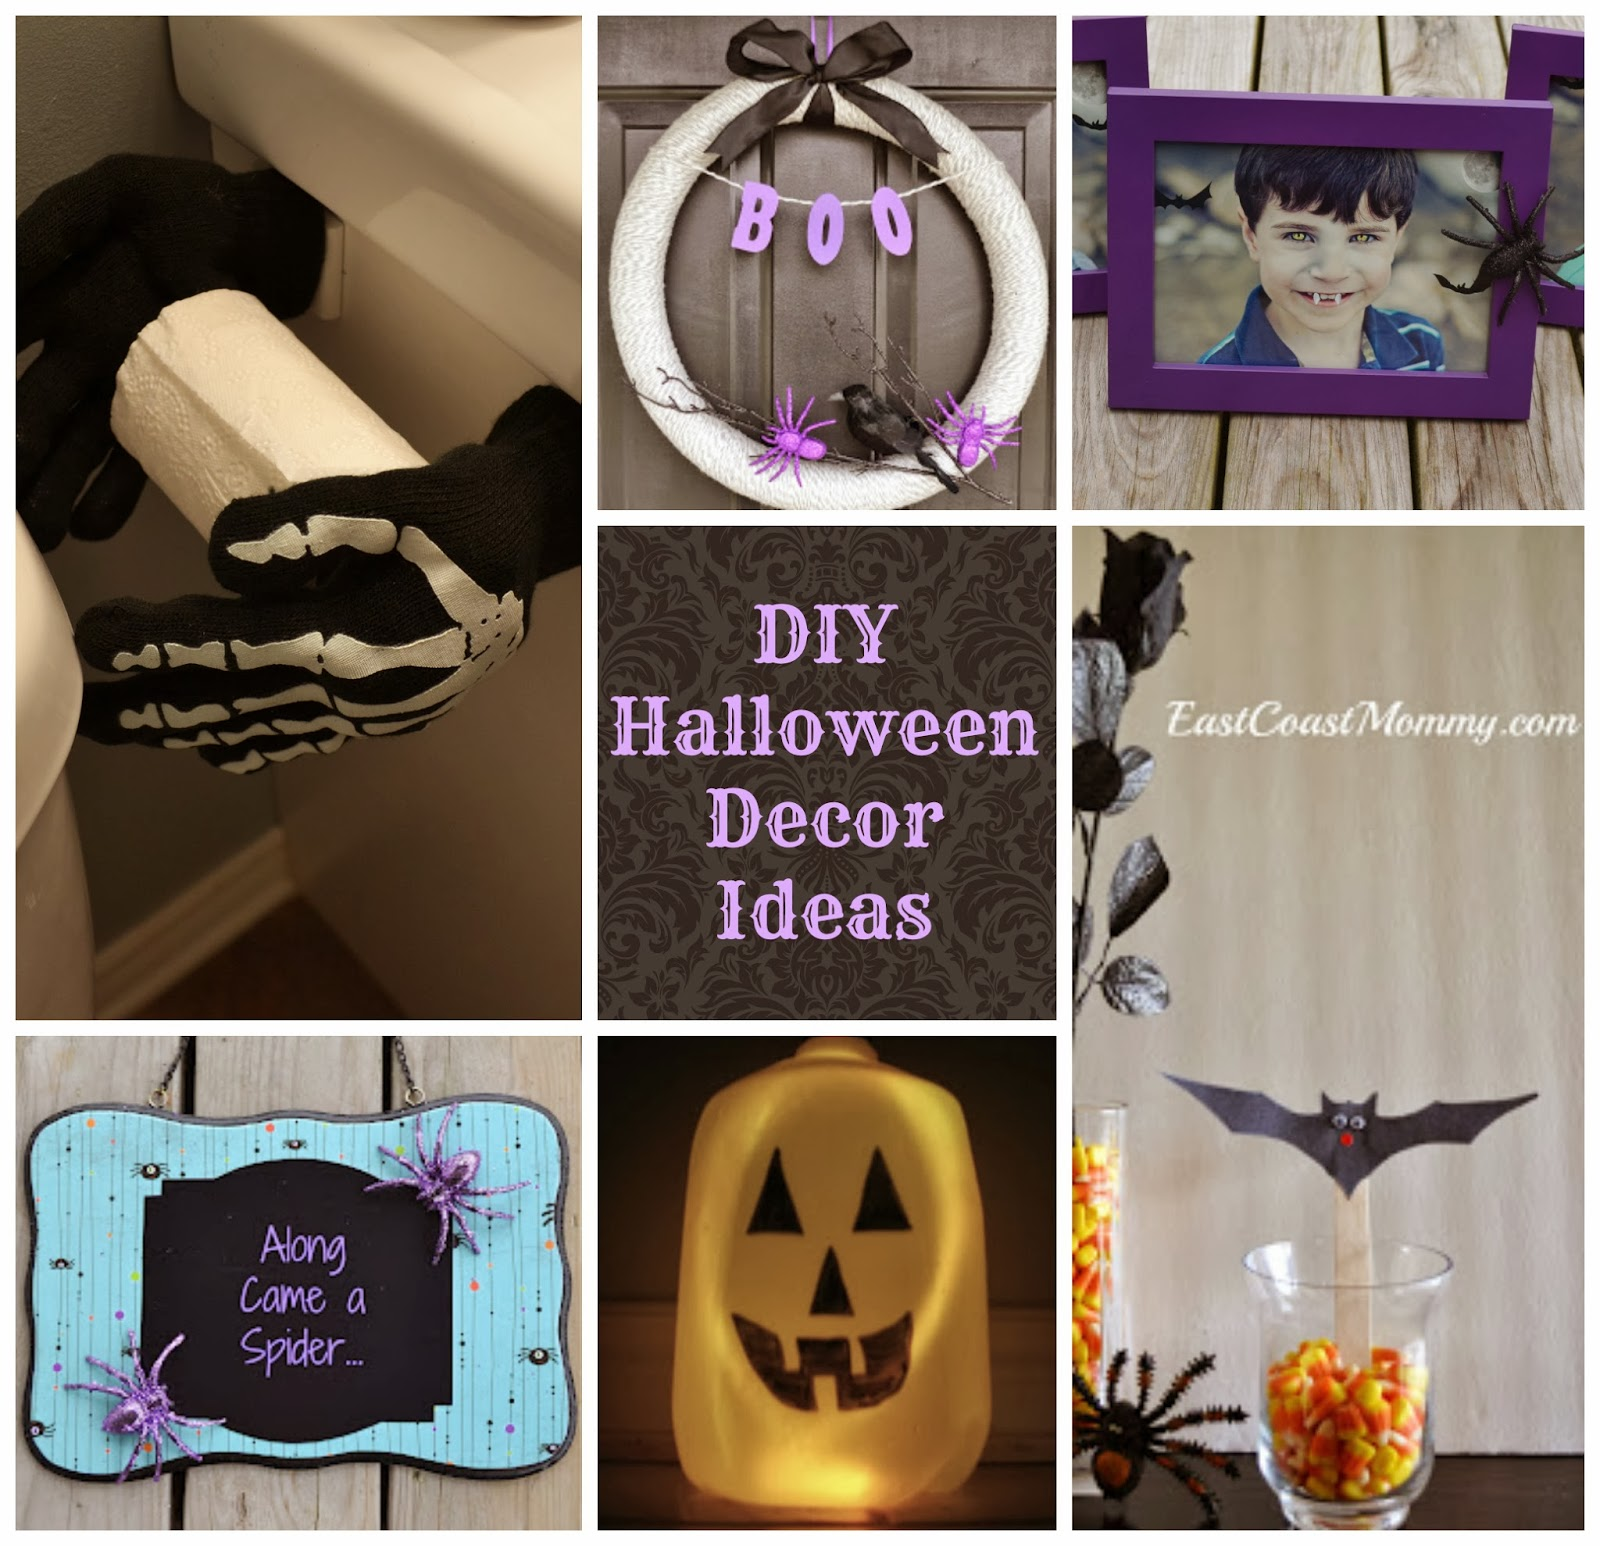 East Coast Mommy: 7 Fantastic DIY Halloween Decor Ideas